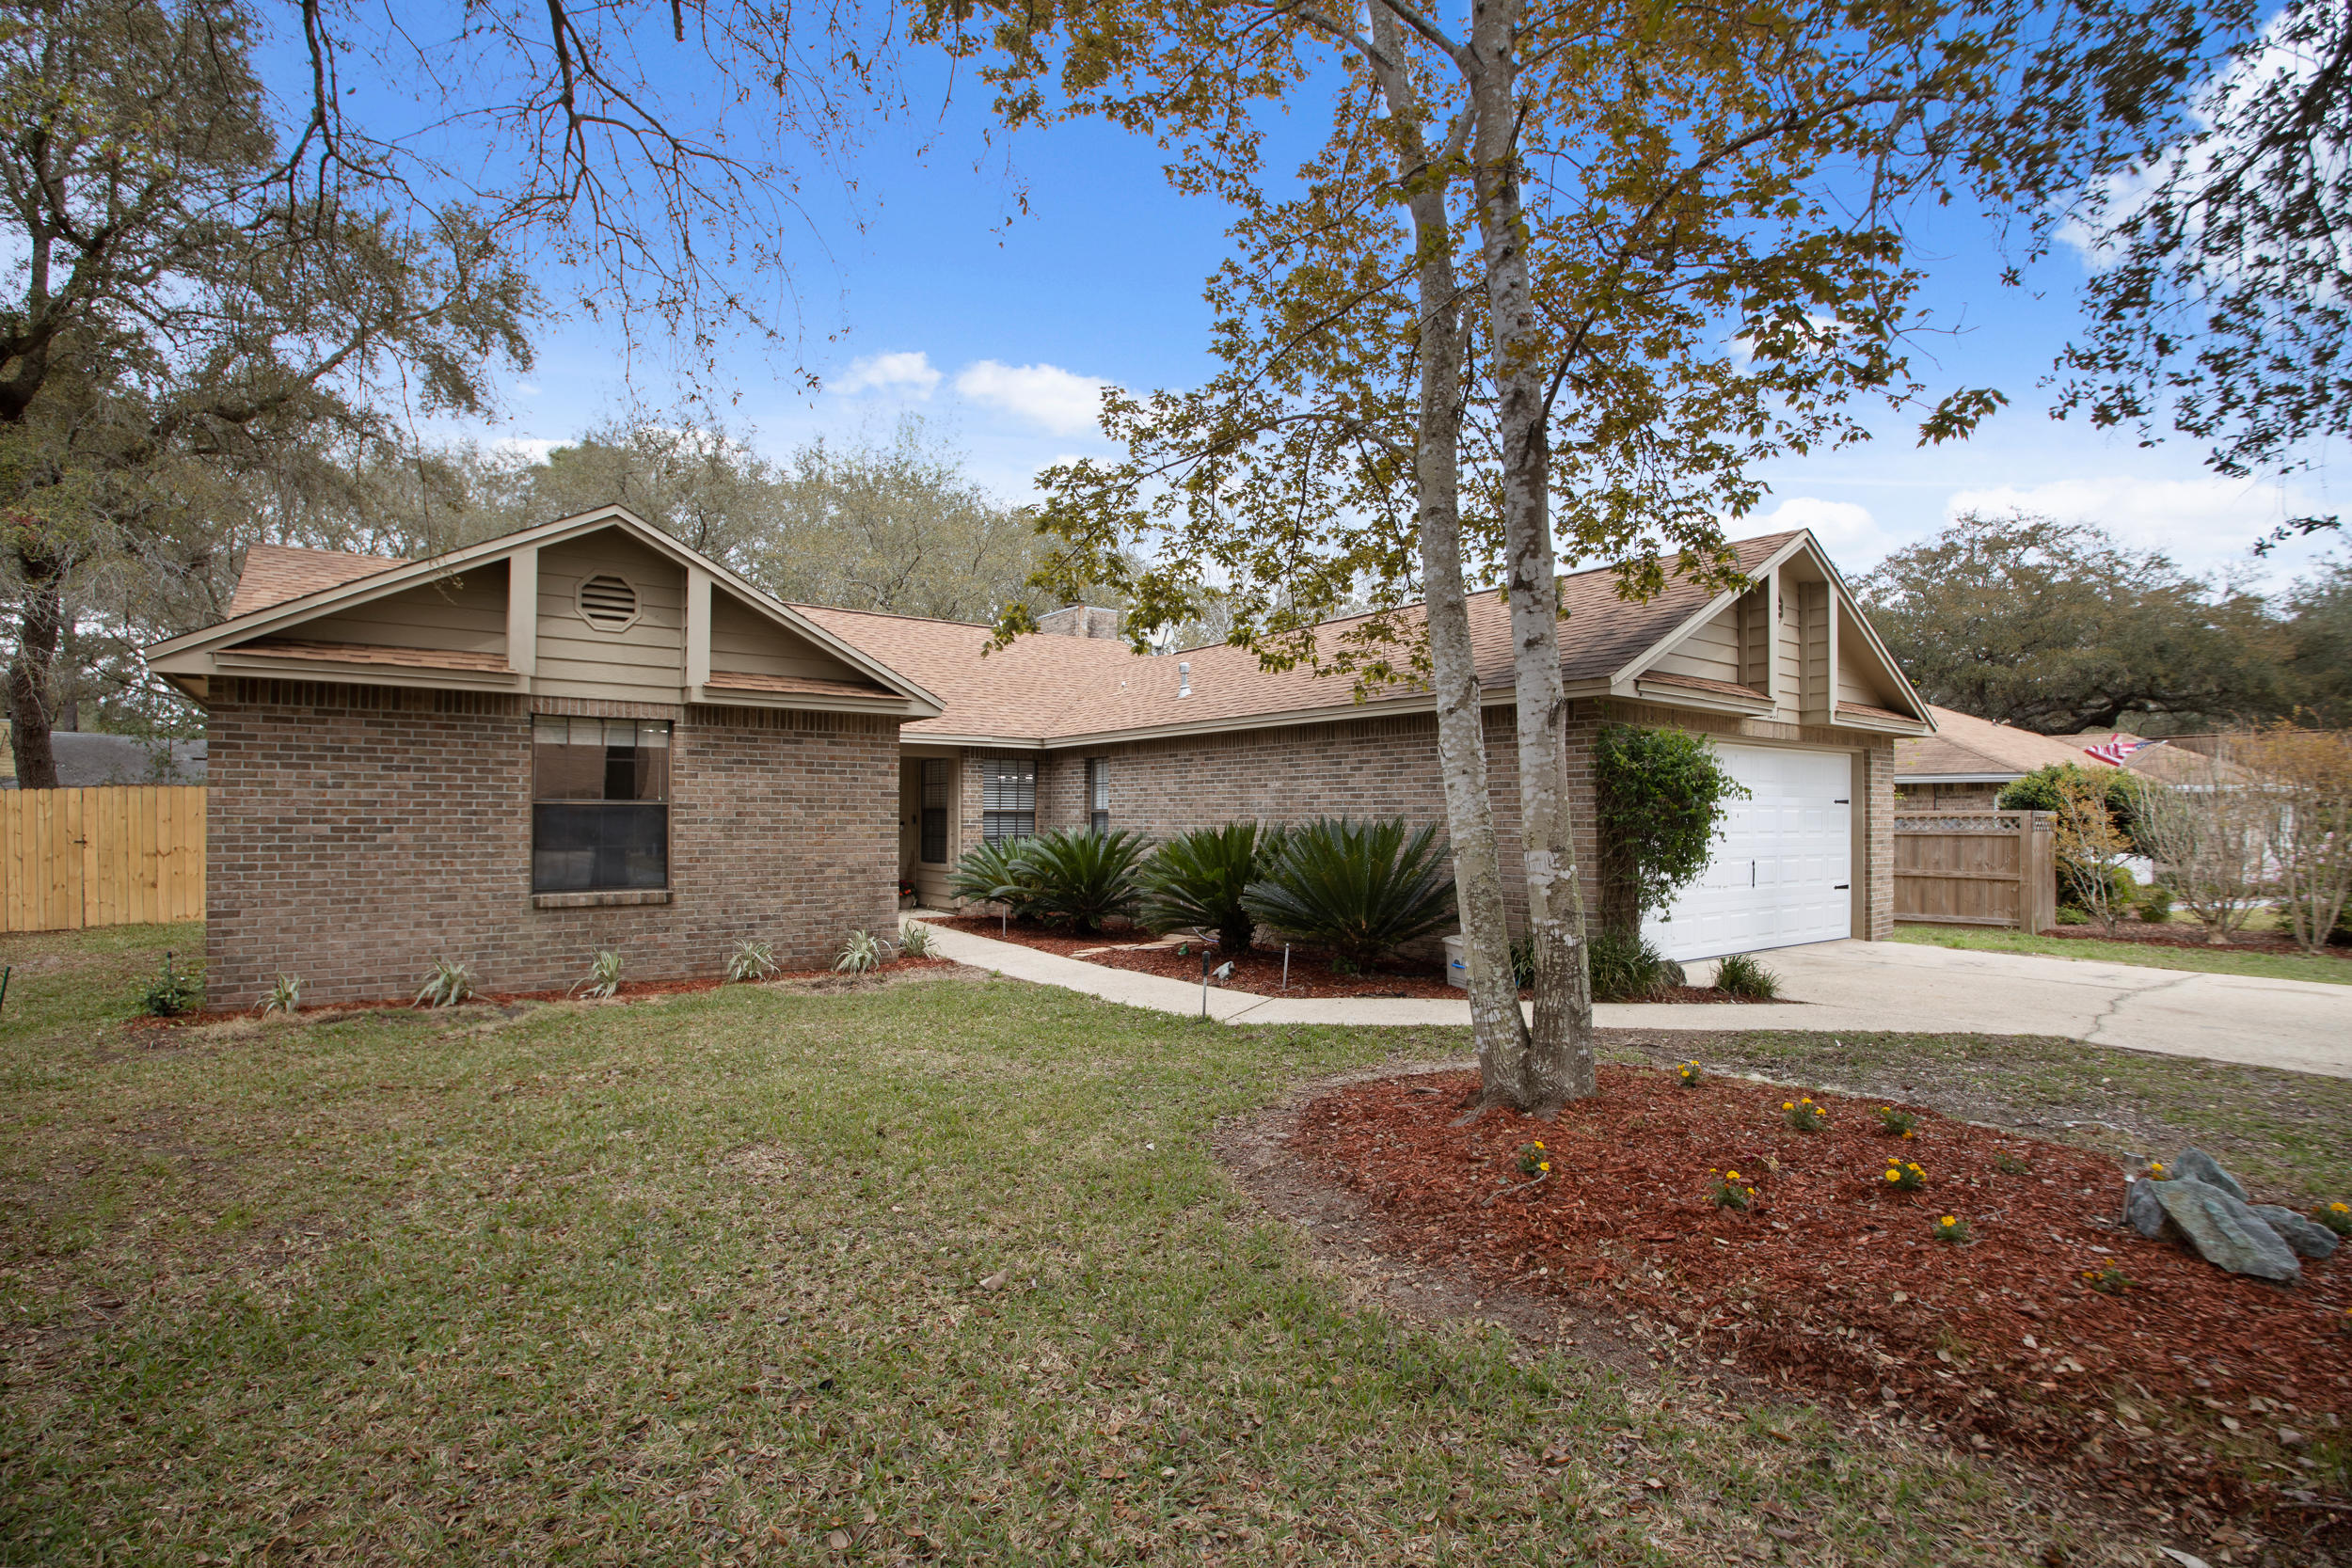 Photo of home for sale at 1257 Whitewood, Niceville FL